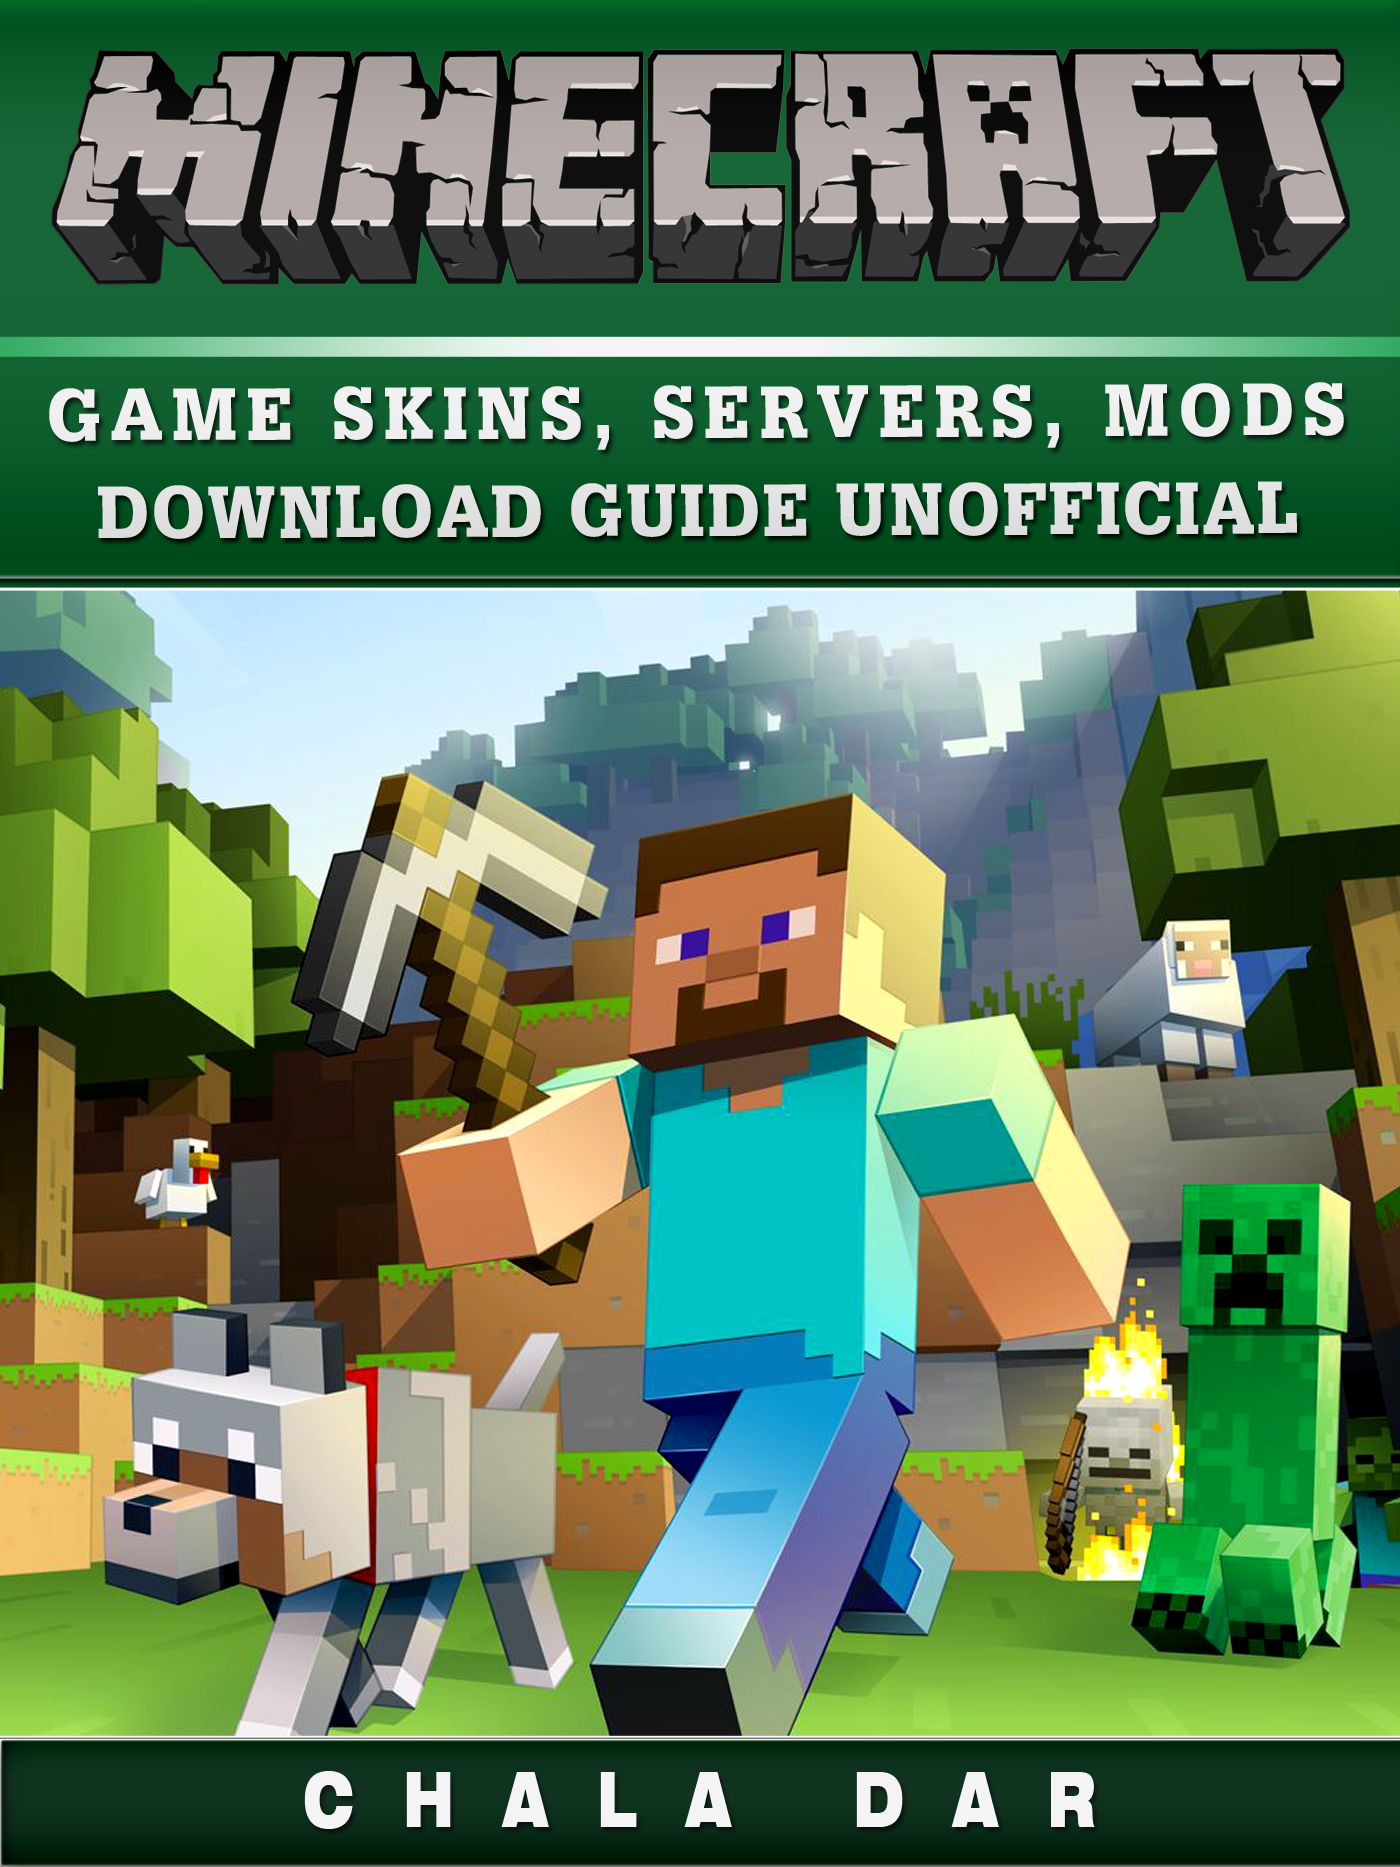 Minecraft Game Skins, Servers, Mods Download Guide Unofficial By Chala Dar